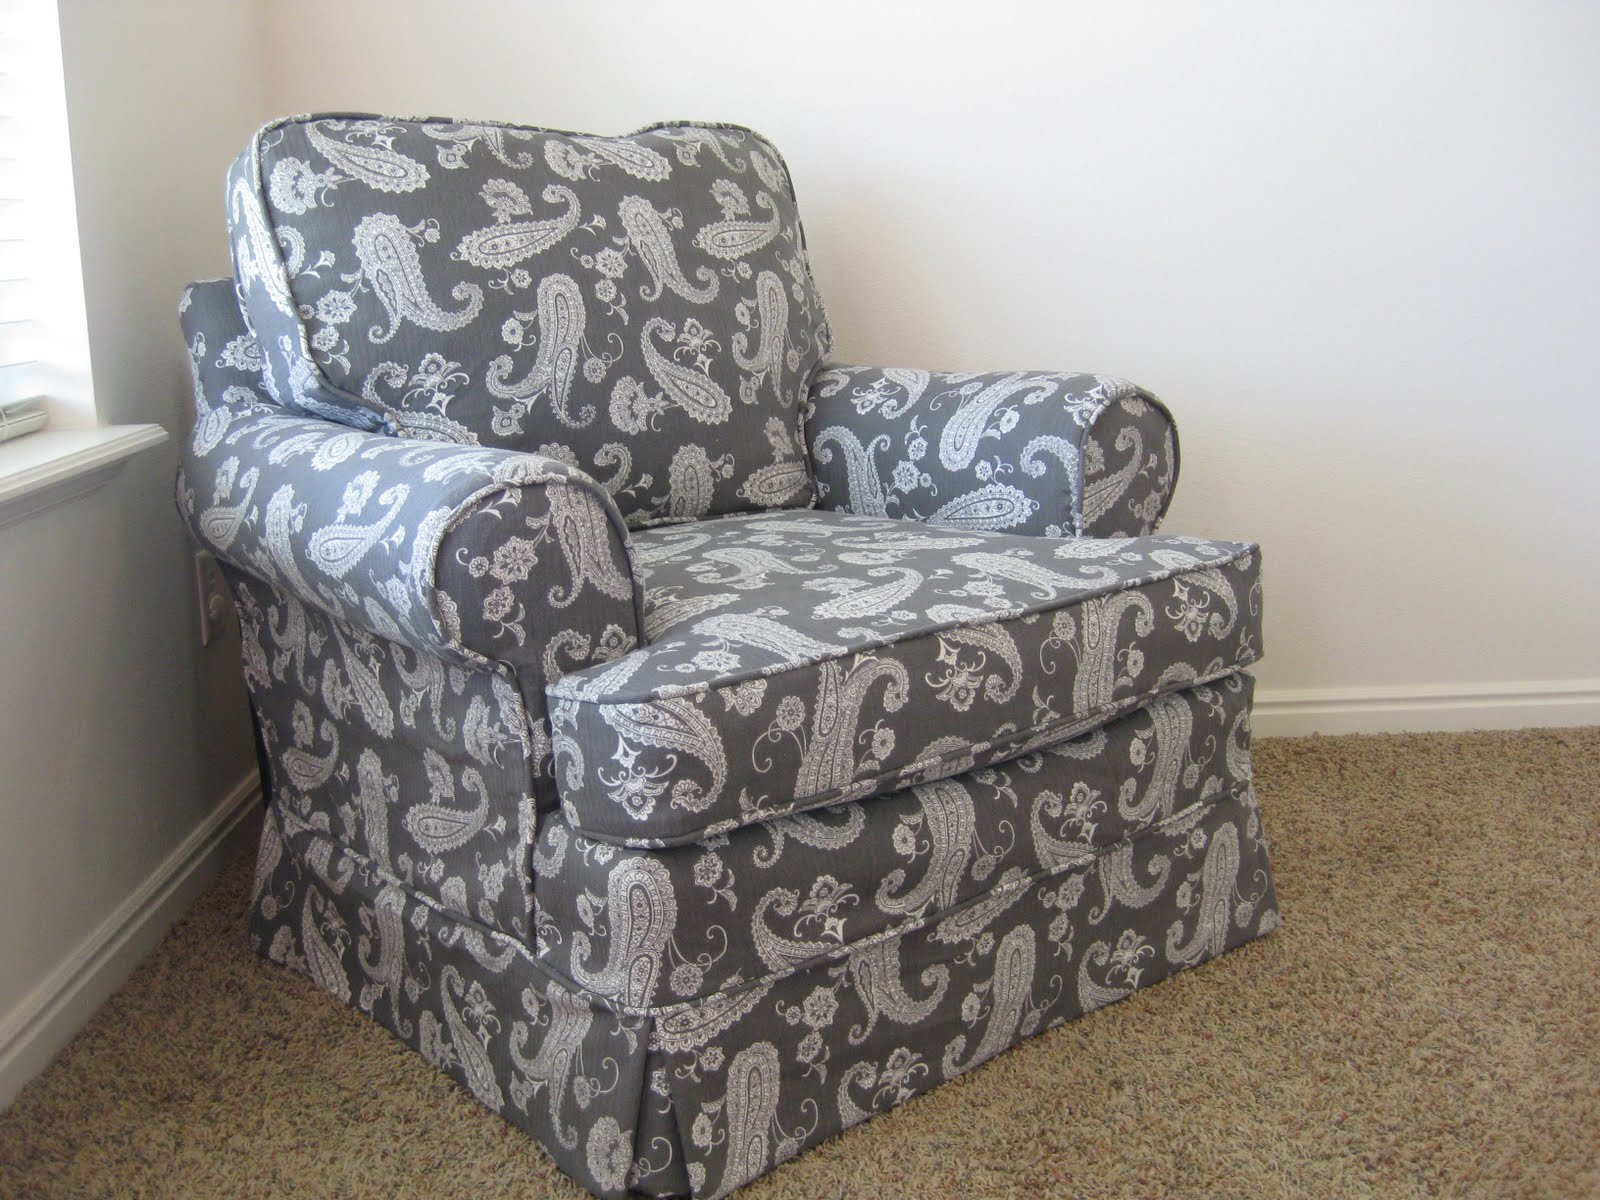 Fabric Dining Chair Covers Australia Cheap Camping Chairs Custom Slipcovers By Shelley Camille 39s Front Room